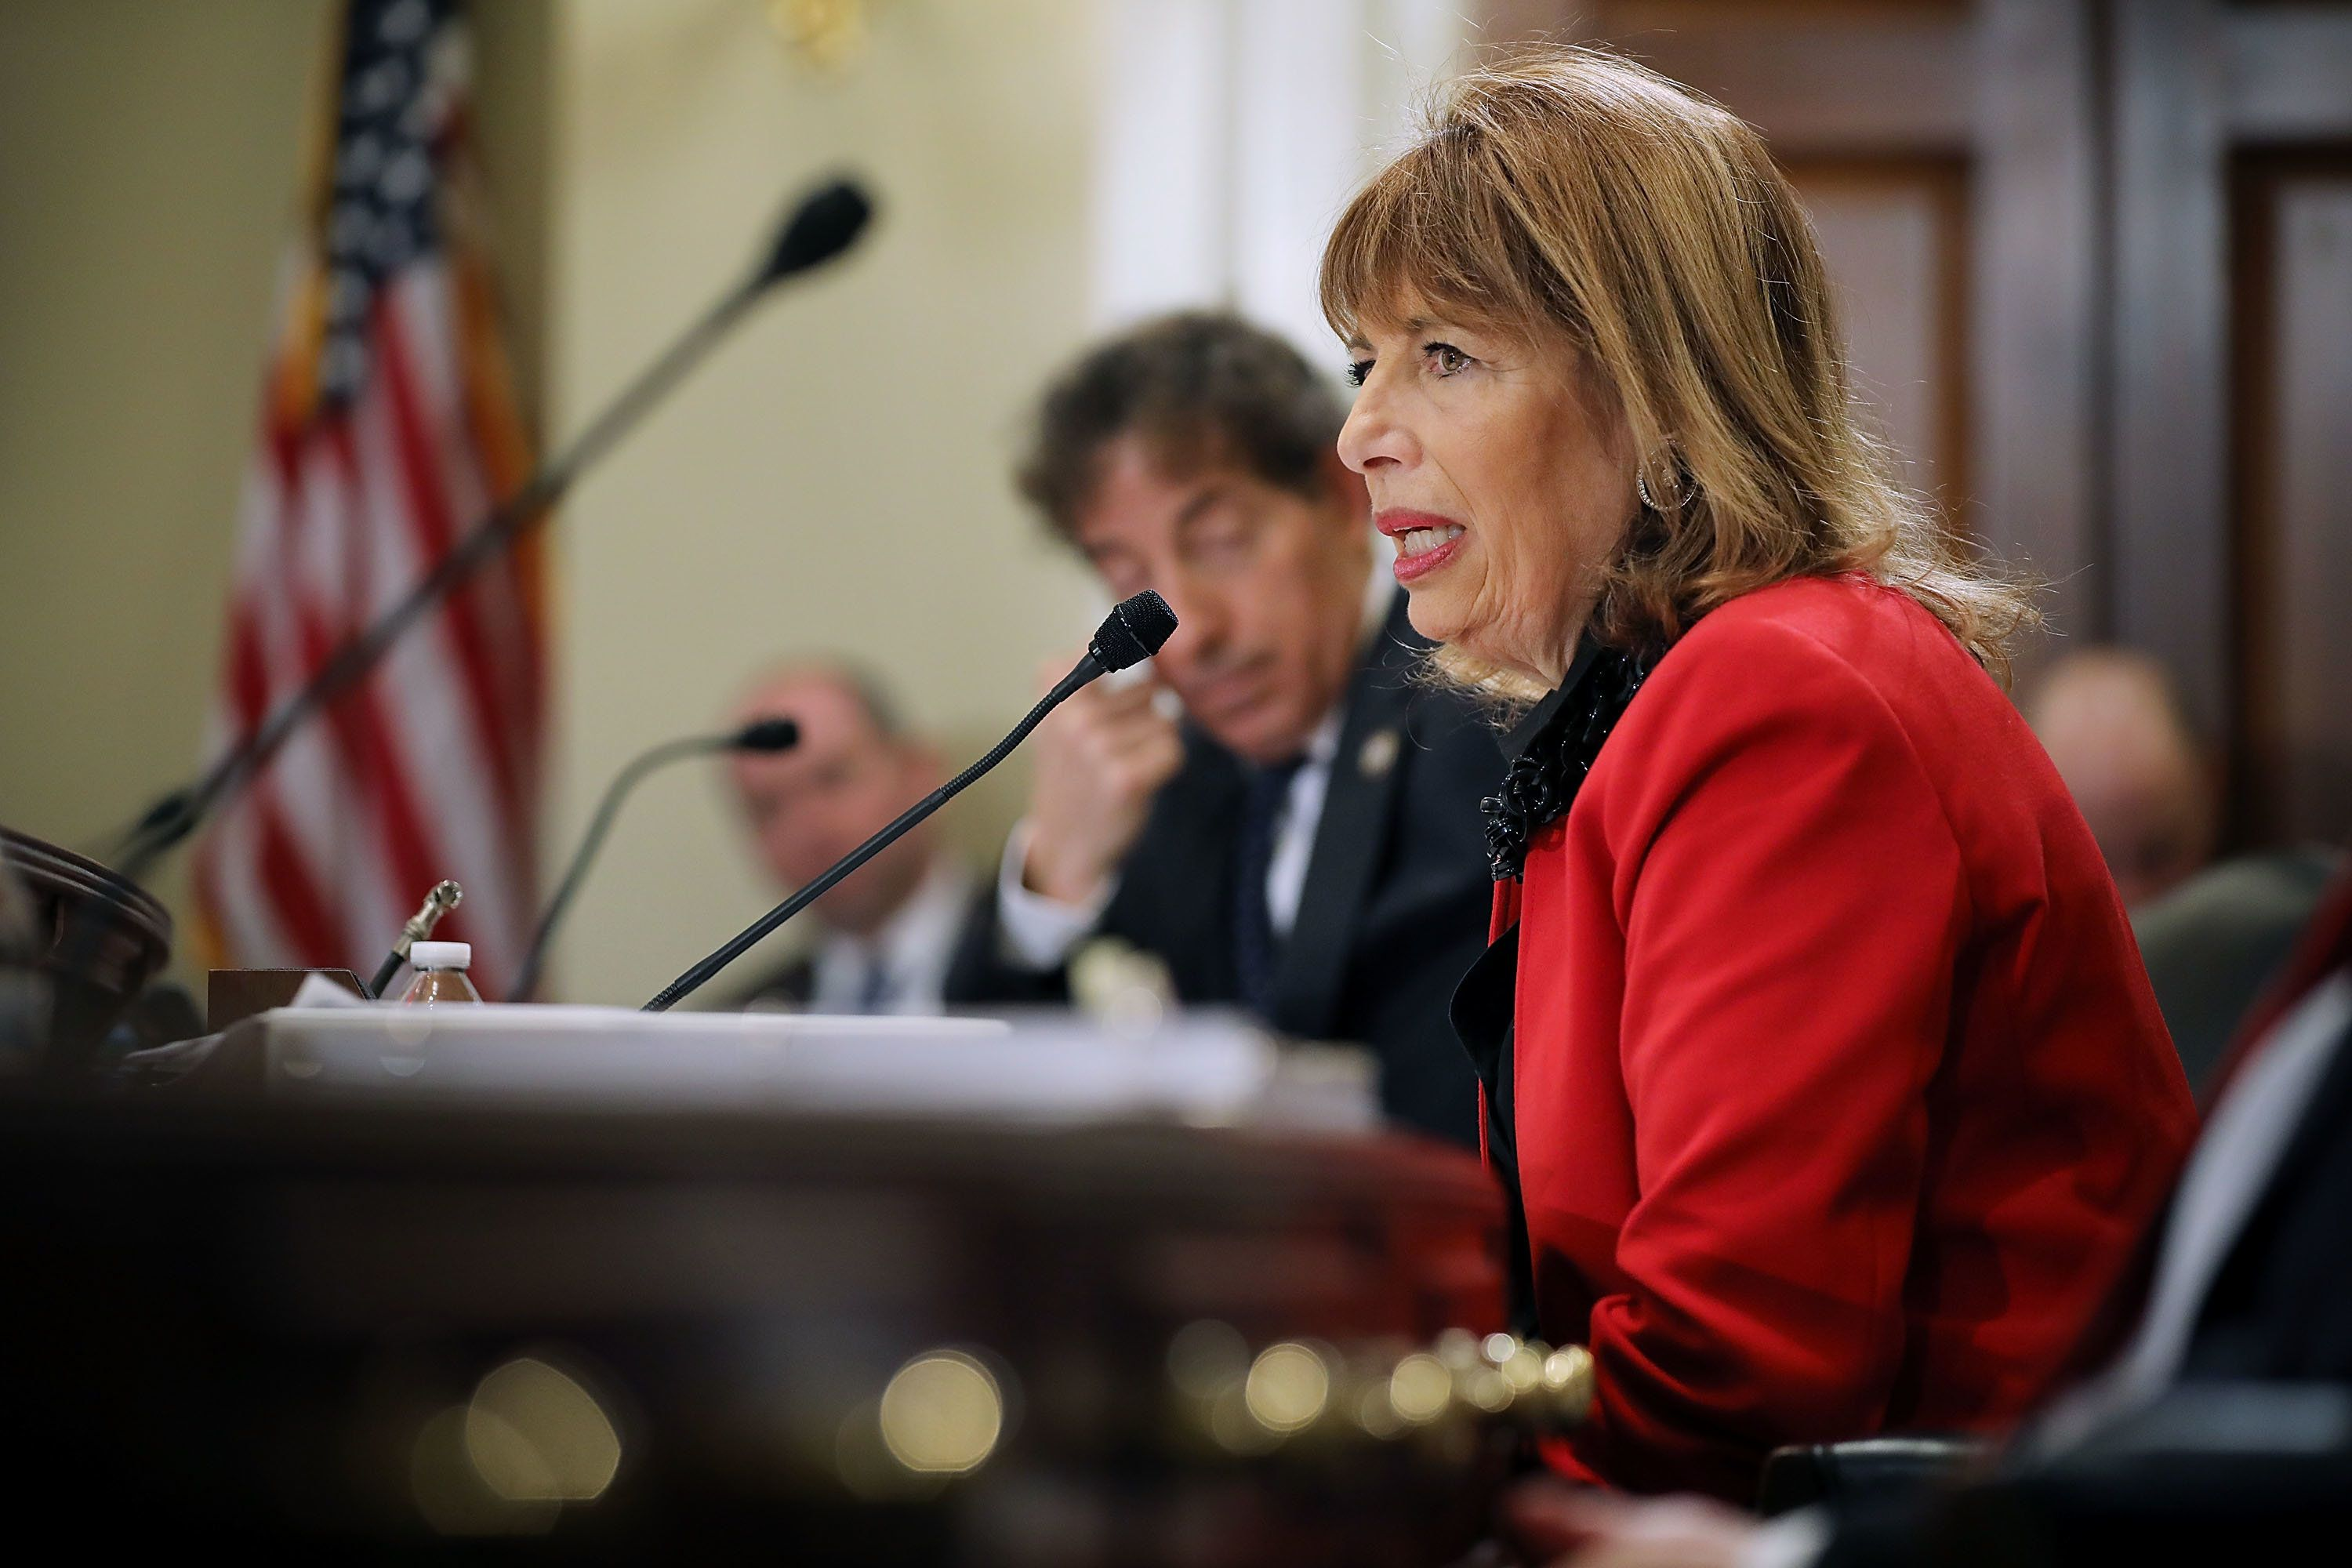 WASHINGTON, DC - DECEMBER 07:  Rep. Jackie Speier (D-CA) delivers opening remarks during a hearing of the House Administration Committee about preventing sexual harassment in Congress in the Longworth House Office Building on Capitol Hill December 7, 2017 in Washington, DC. Committee members and staff tasked with handling sexual harassment cases in Congress agreed that the Congressional Accountability Act of 1995 needs to be revisited and reformed in the wake of recent accusations of harassment and resulting resignations.  (Photo by Chip Somodevilla/Getty Images)